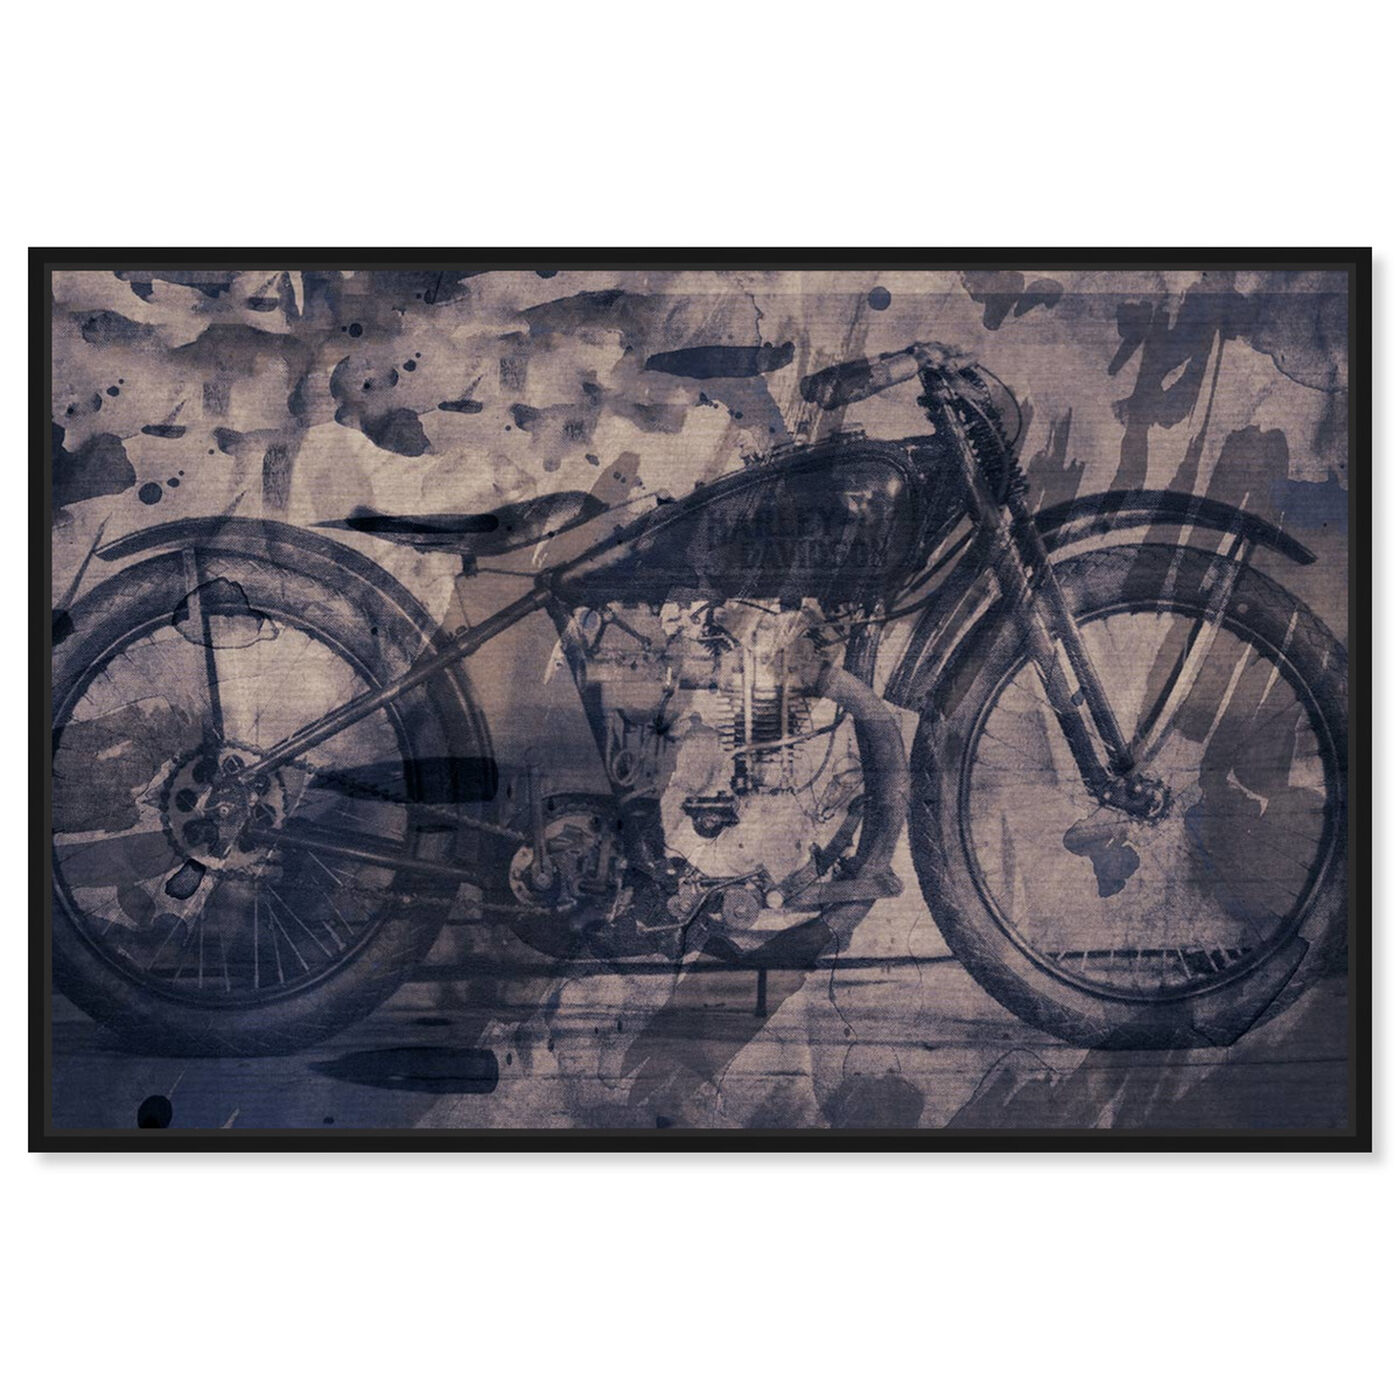 Front view of Vintage Bike featuring transportation and motorcycles art.